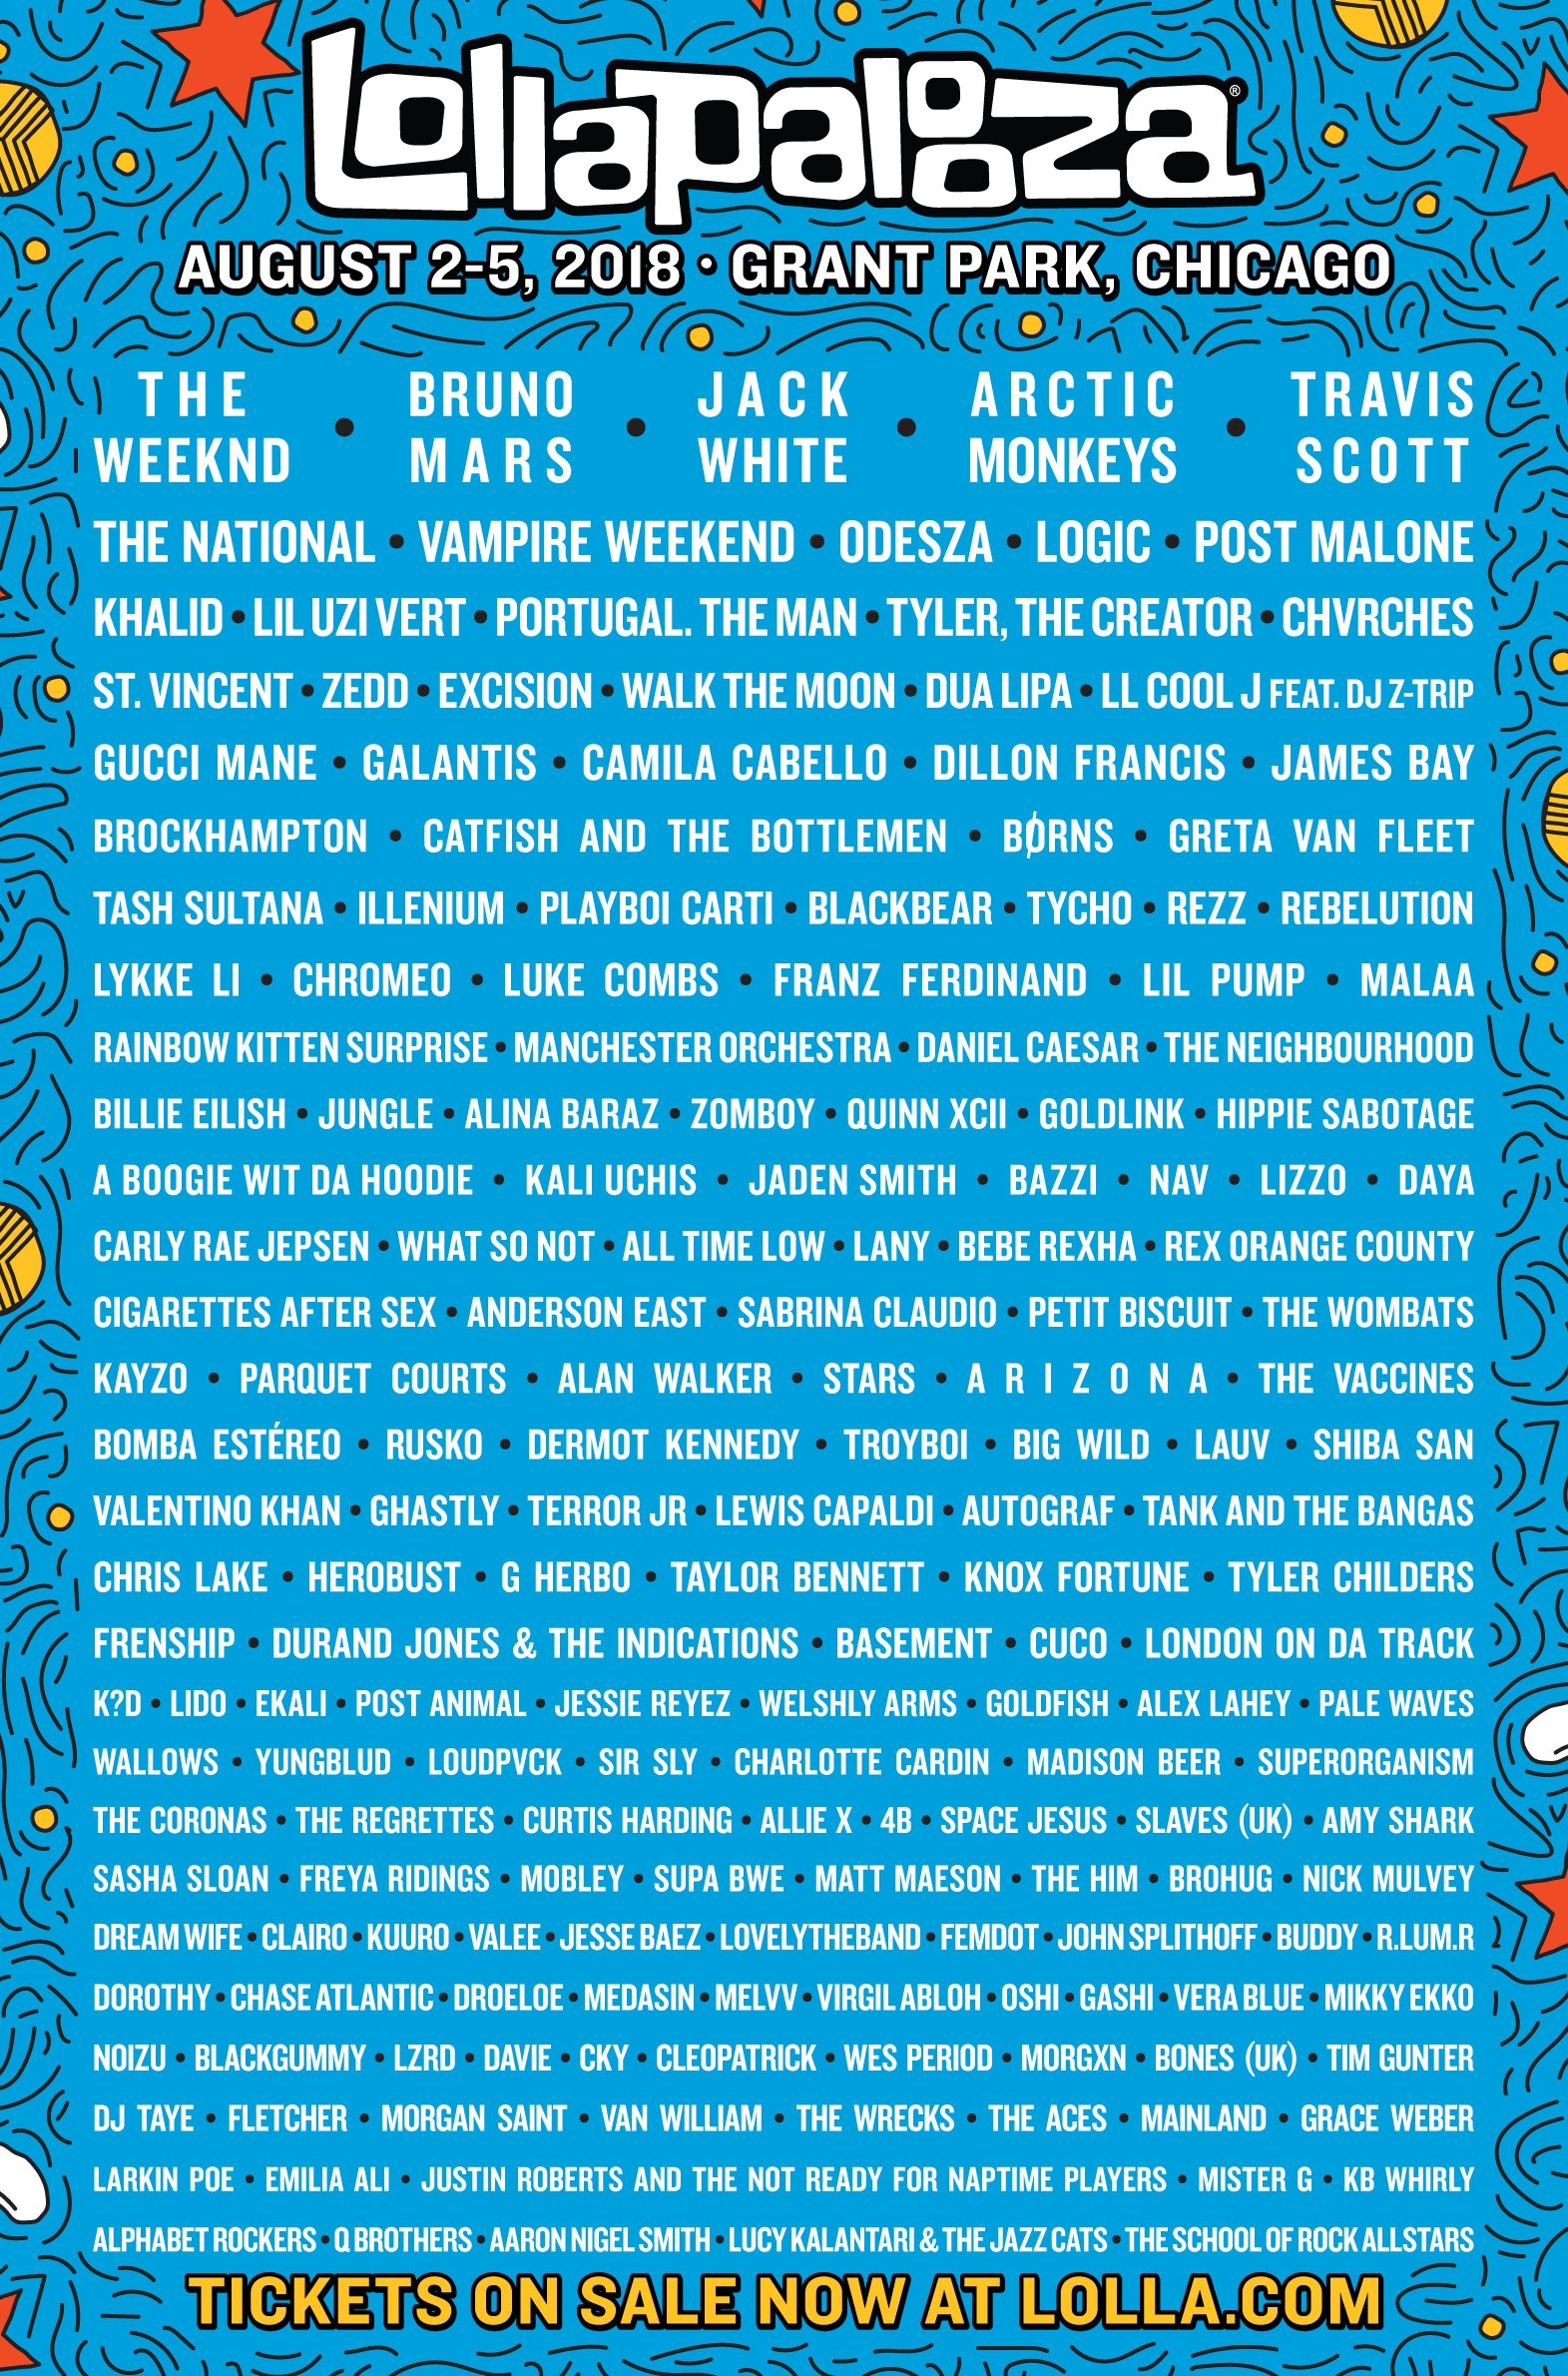 Line Up Lollapalooza 2018. Foto: Lollapalooza